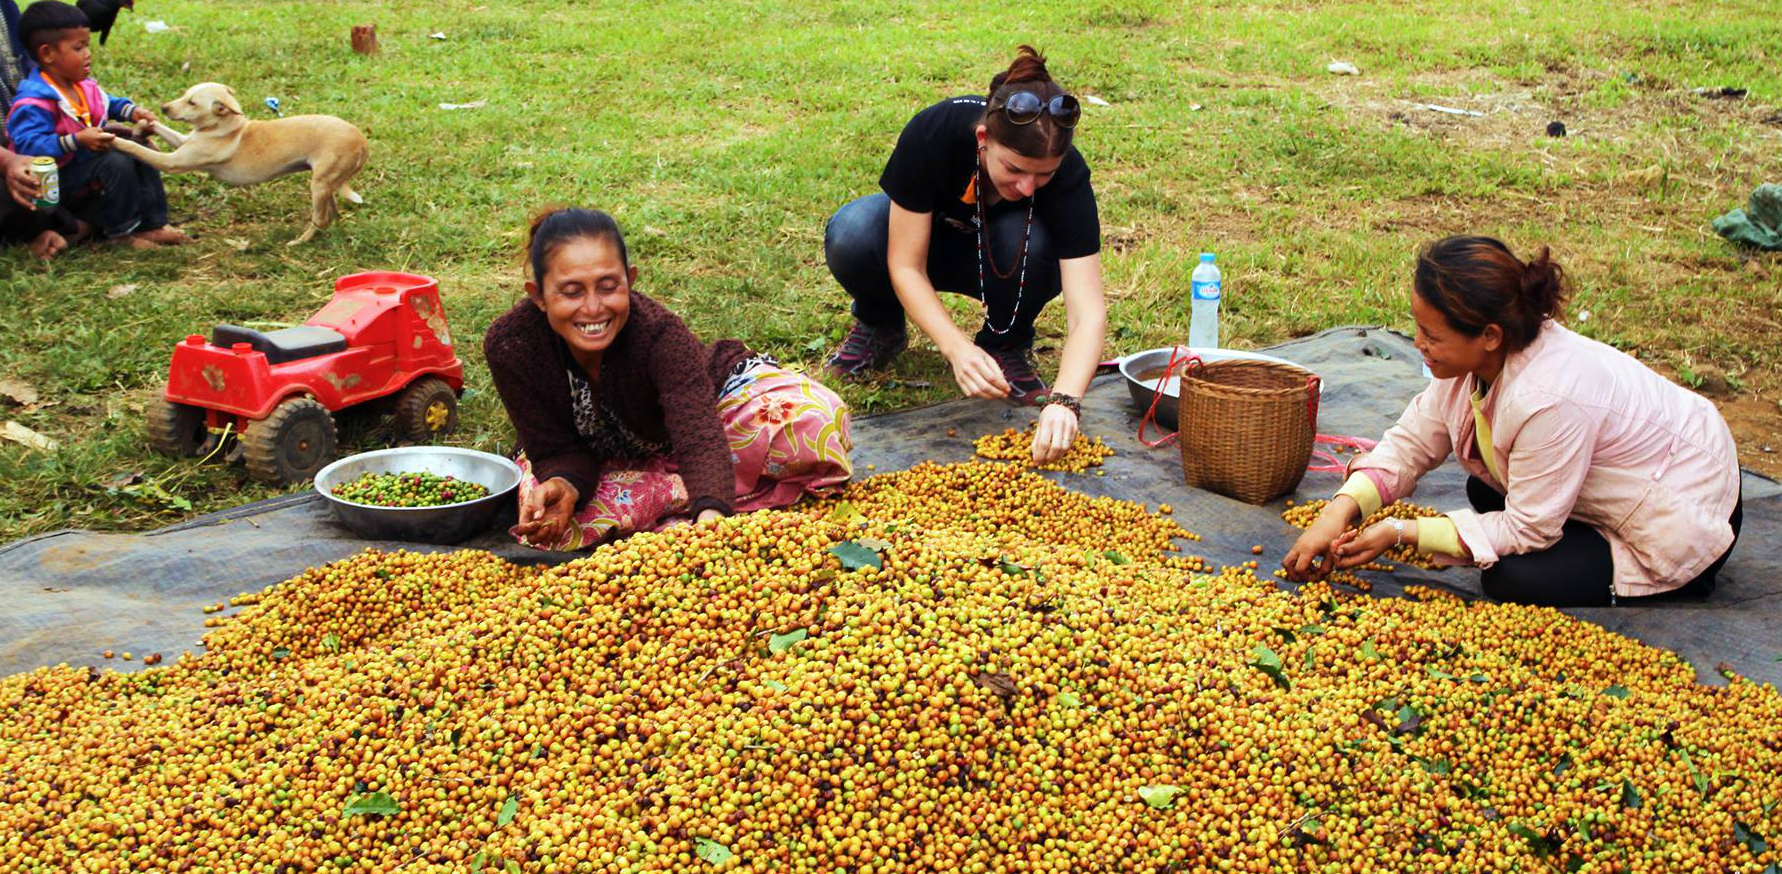 Cana (middle, Filanthrope), assisting Nong Kali village with the day's harvest